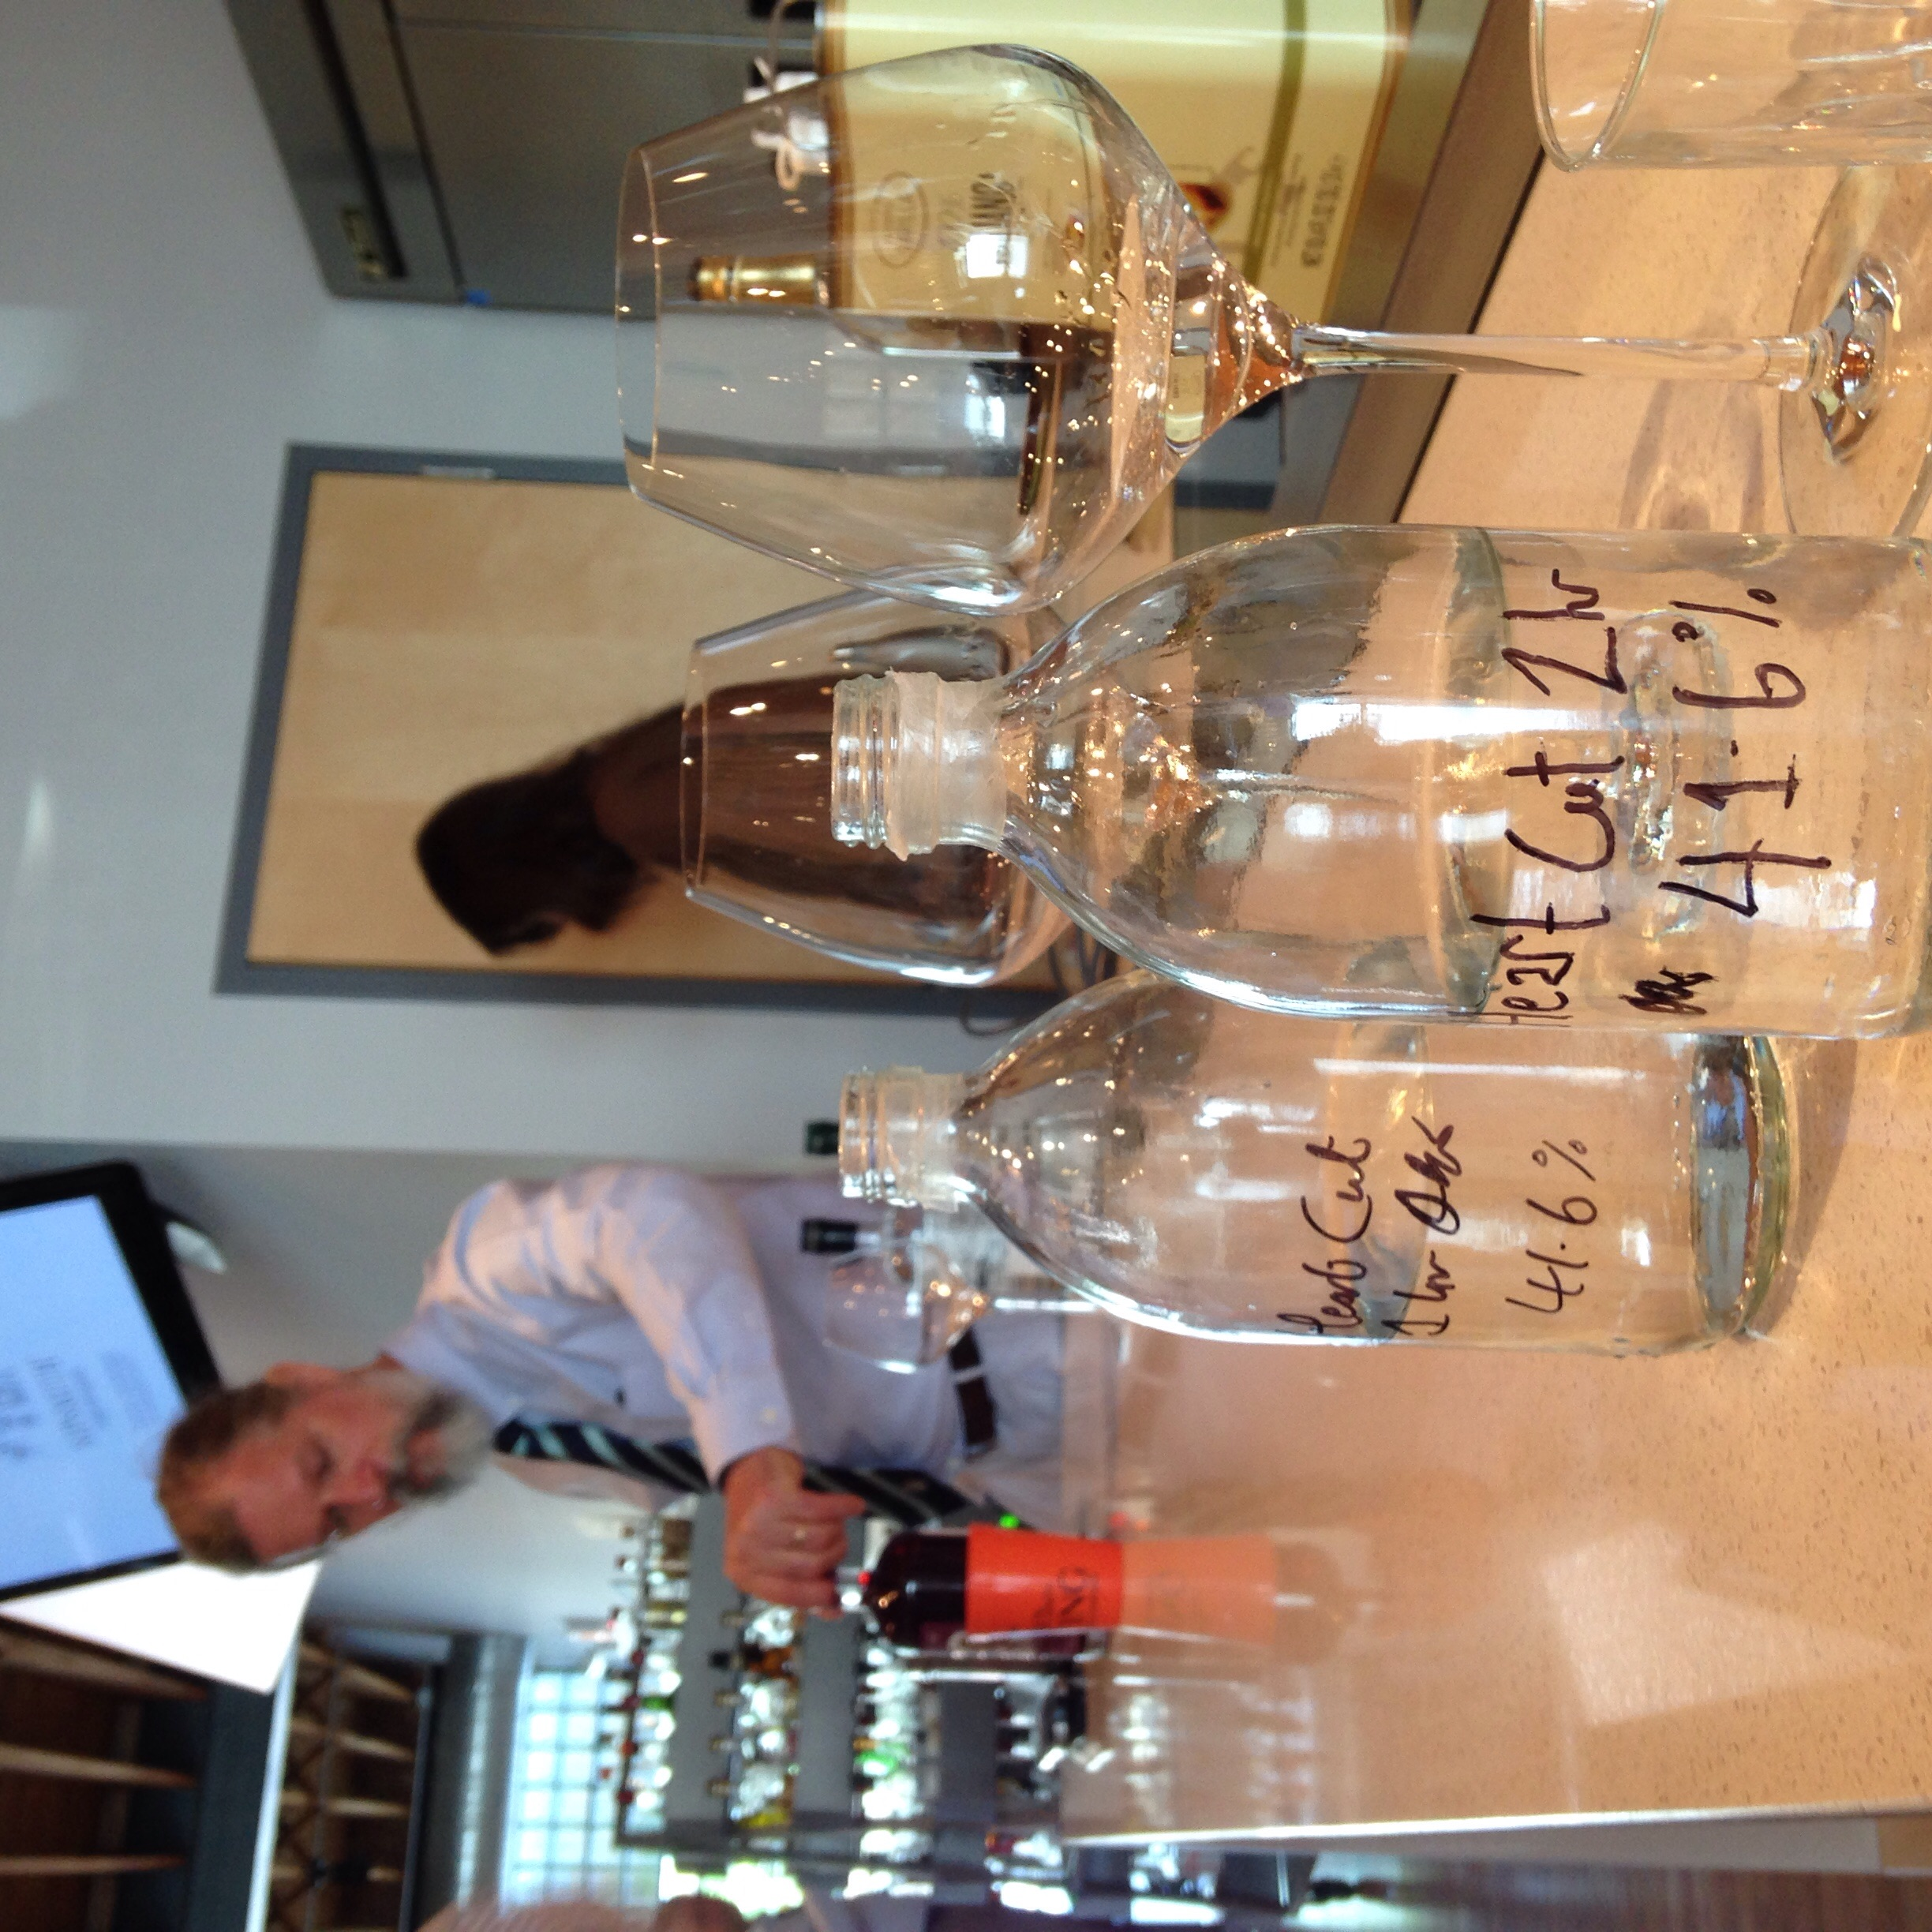 Comparative tasting of different cuts of gin from the still, at different hours of the process.